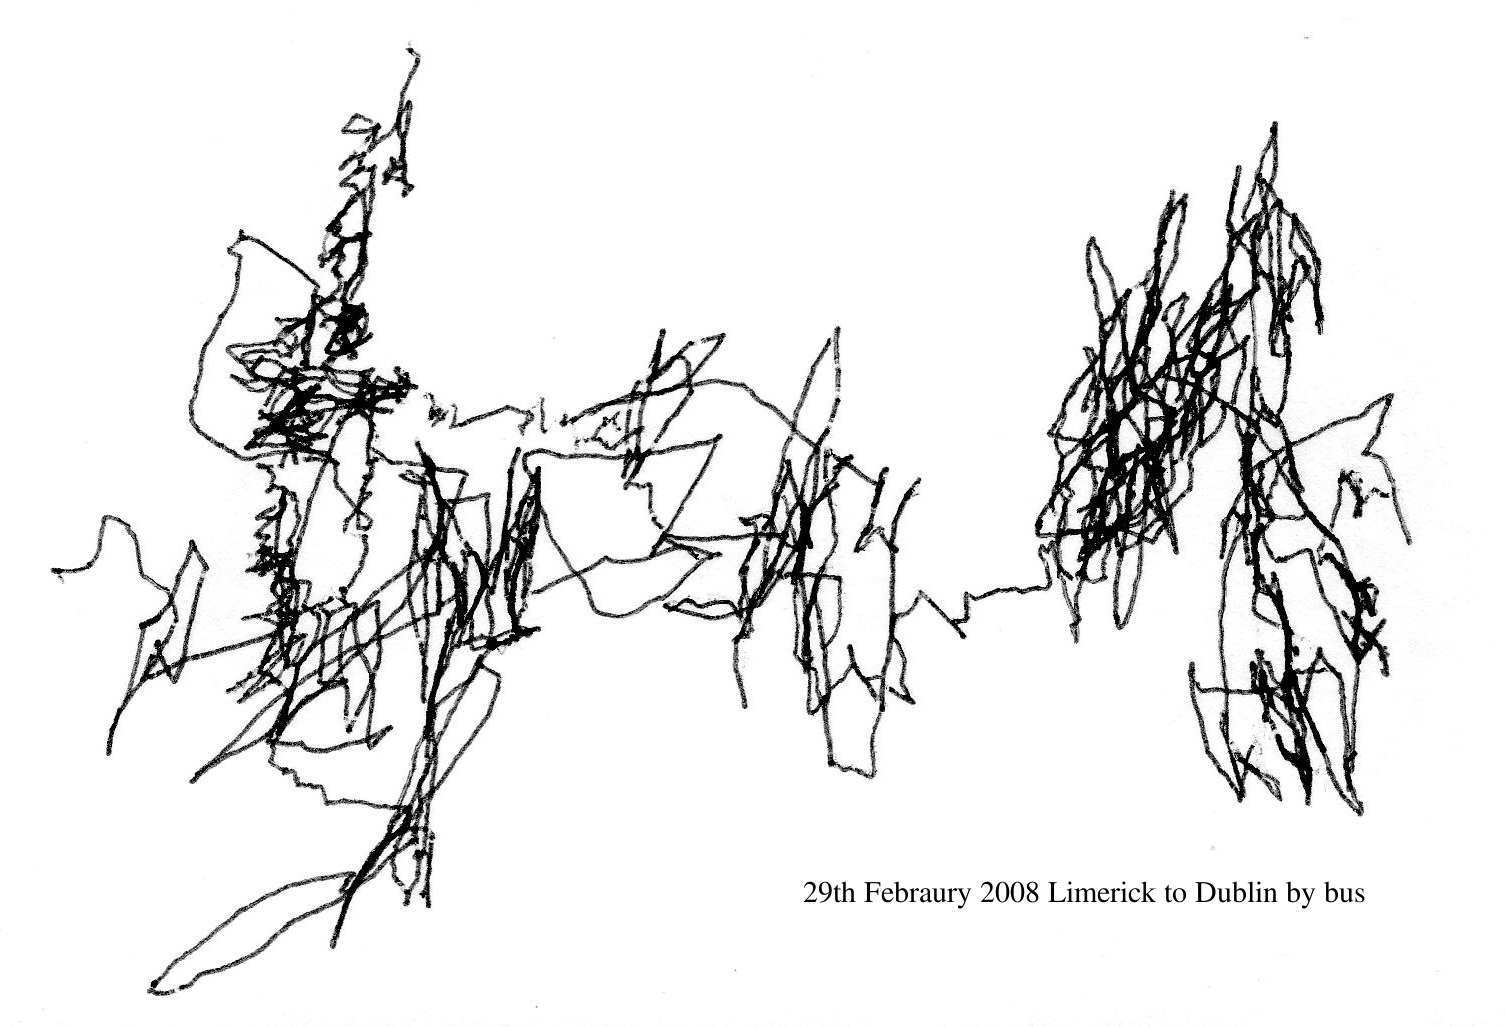 1506x1027 Notions Of Journeying The Threads Of A New Body Of Work Is Born